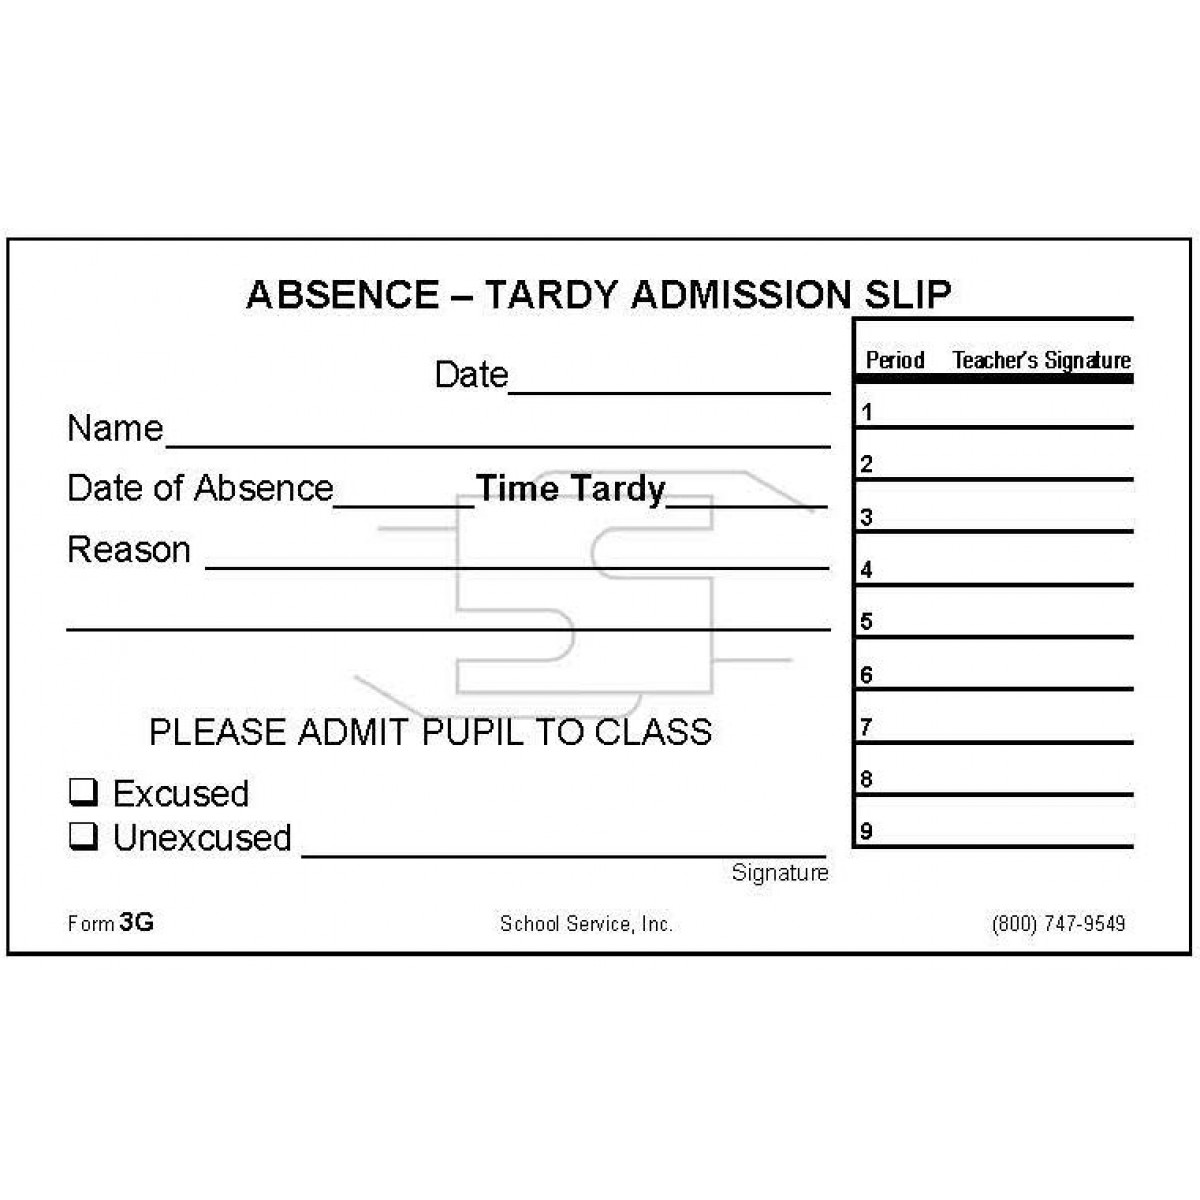 Absence-Tardy Admission Slip - Padded Forms